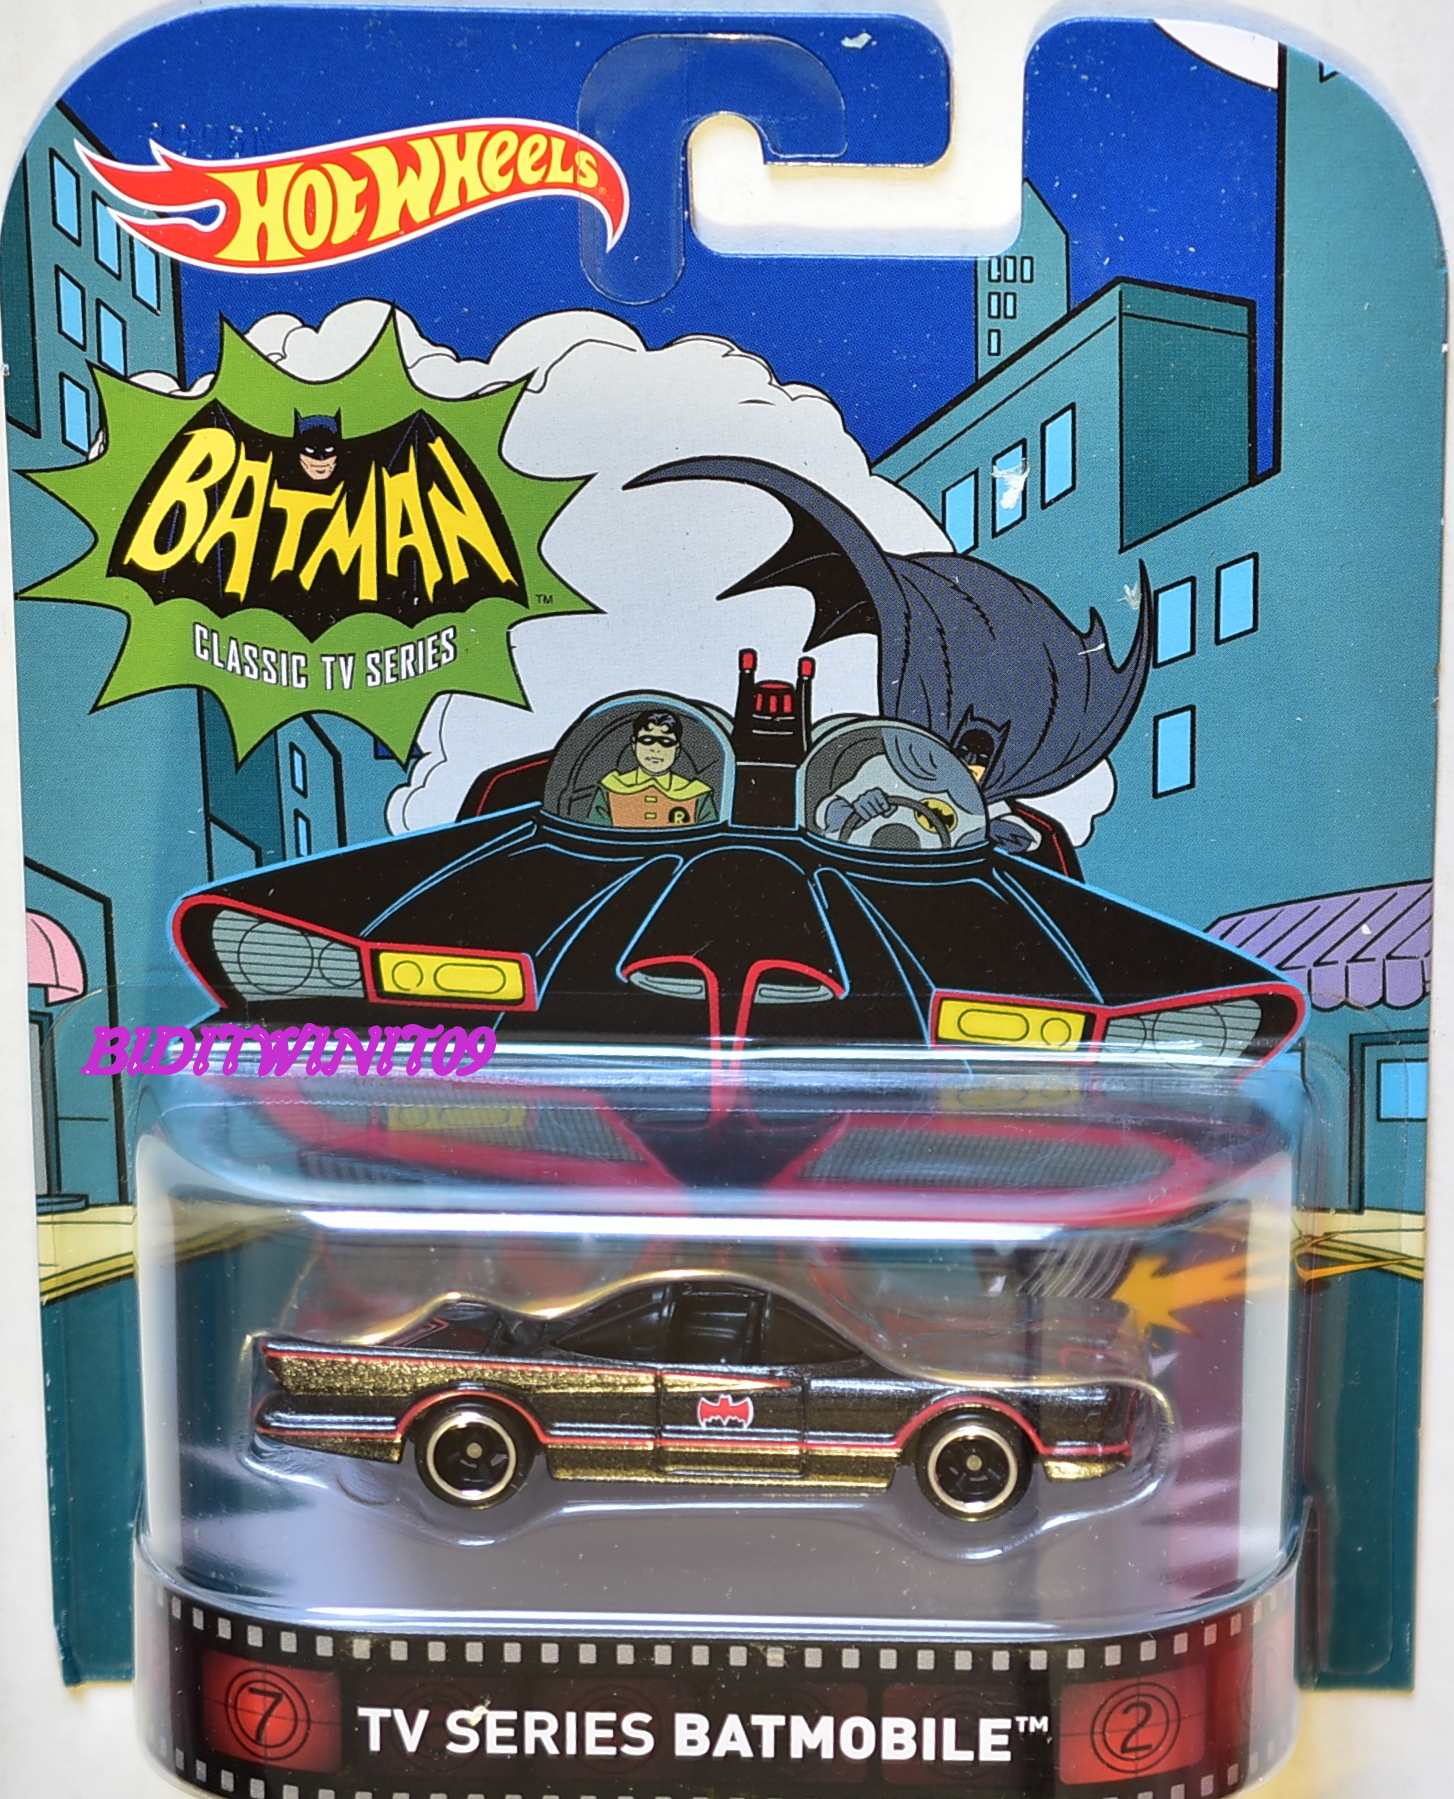 HOT WHEELS 2016 RETRO ENTERTAINMENT BATMAN CLASSIC TV SERIES BATMOBILE